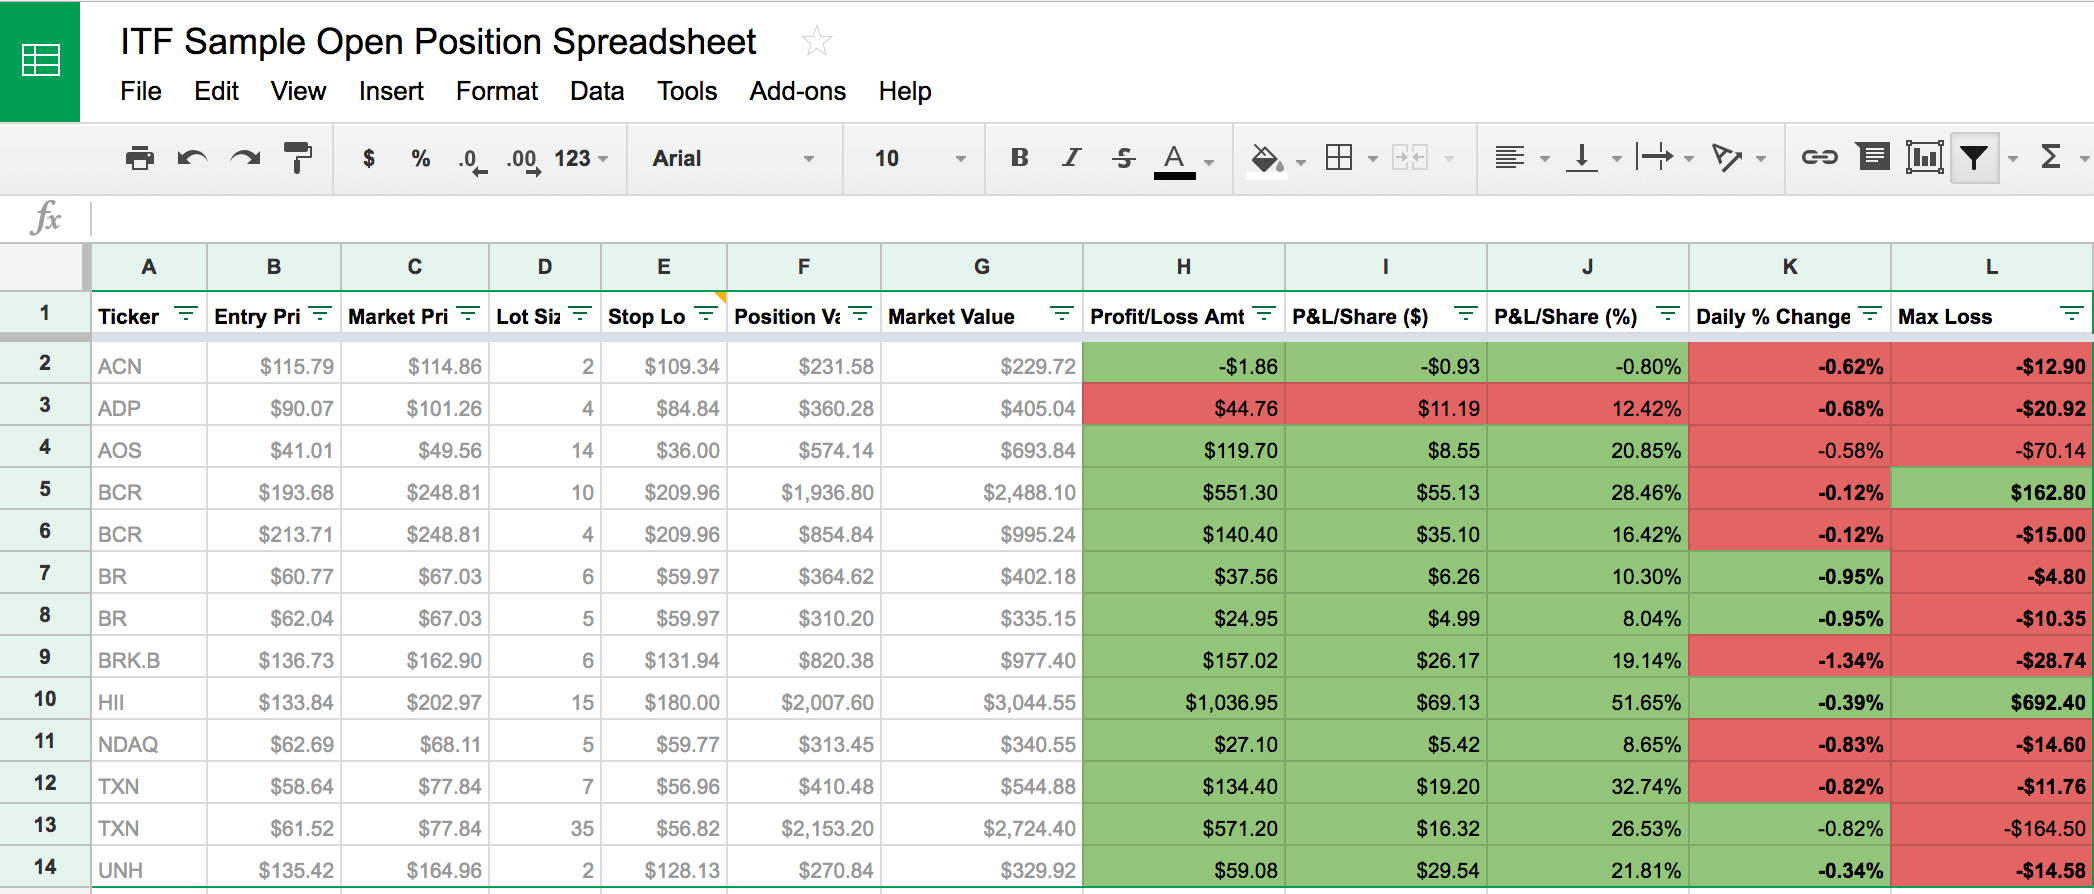 Stock Trading Spreadsheet For Learn How To Track Your Stock Trades With This Free Google Spreadsheet